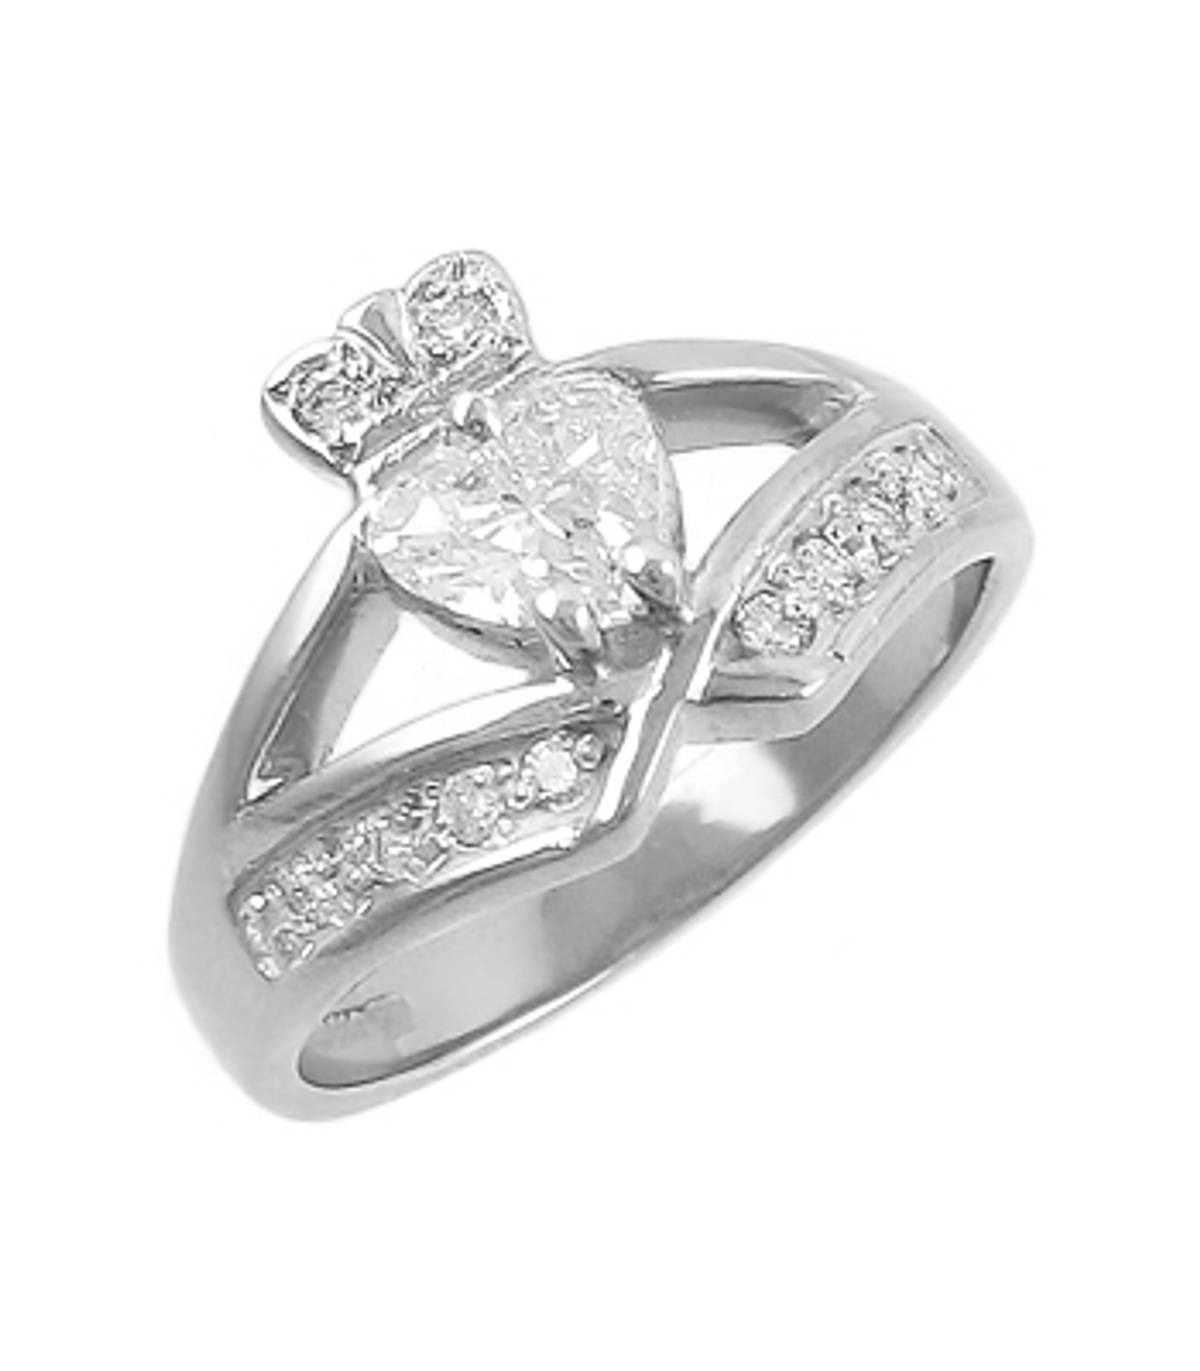 Irish made 14 carat white gold 0.45cts/0.12cts diamonds claddagh engagement ring